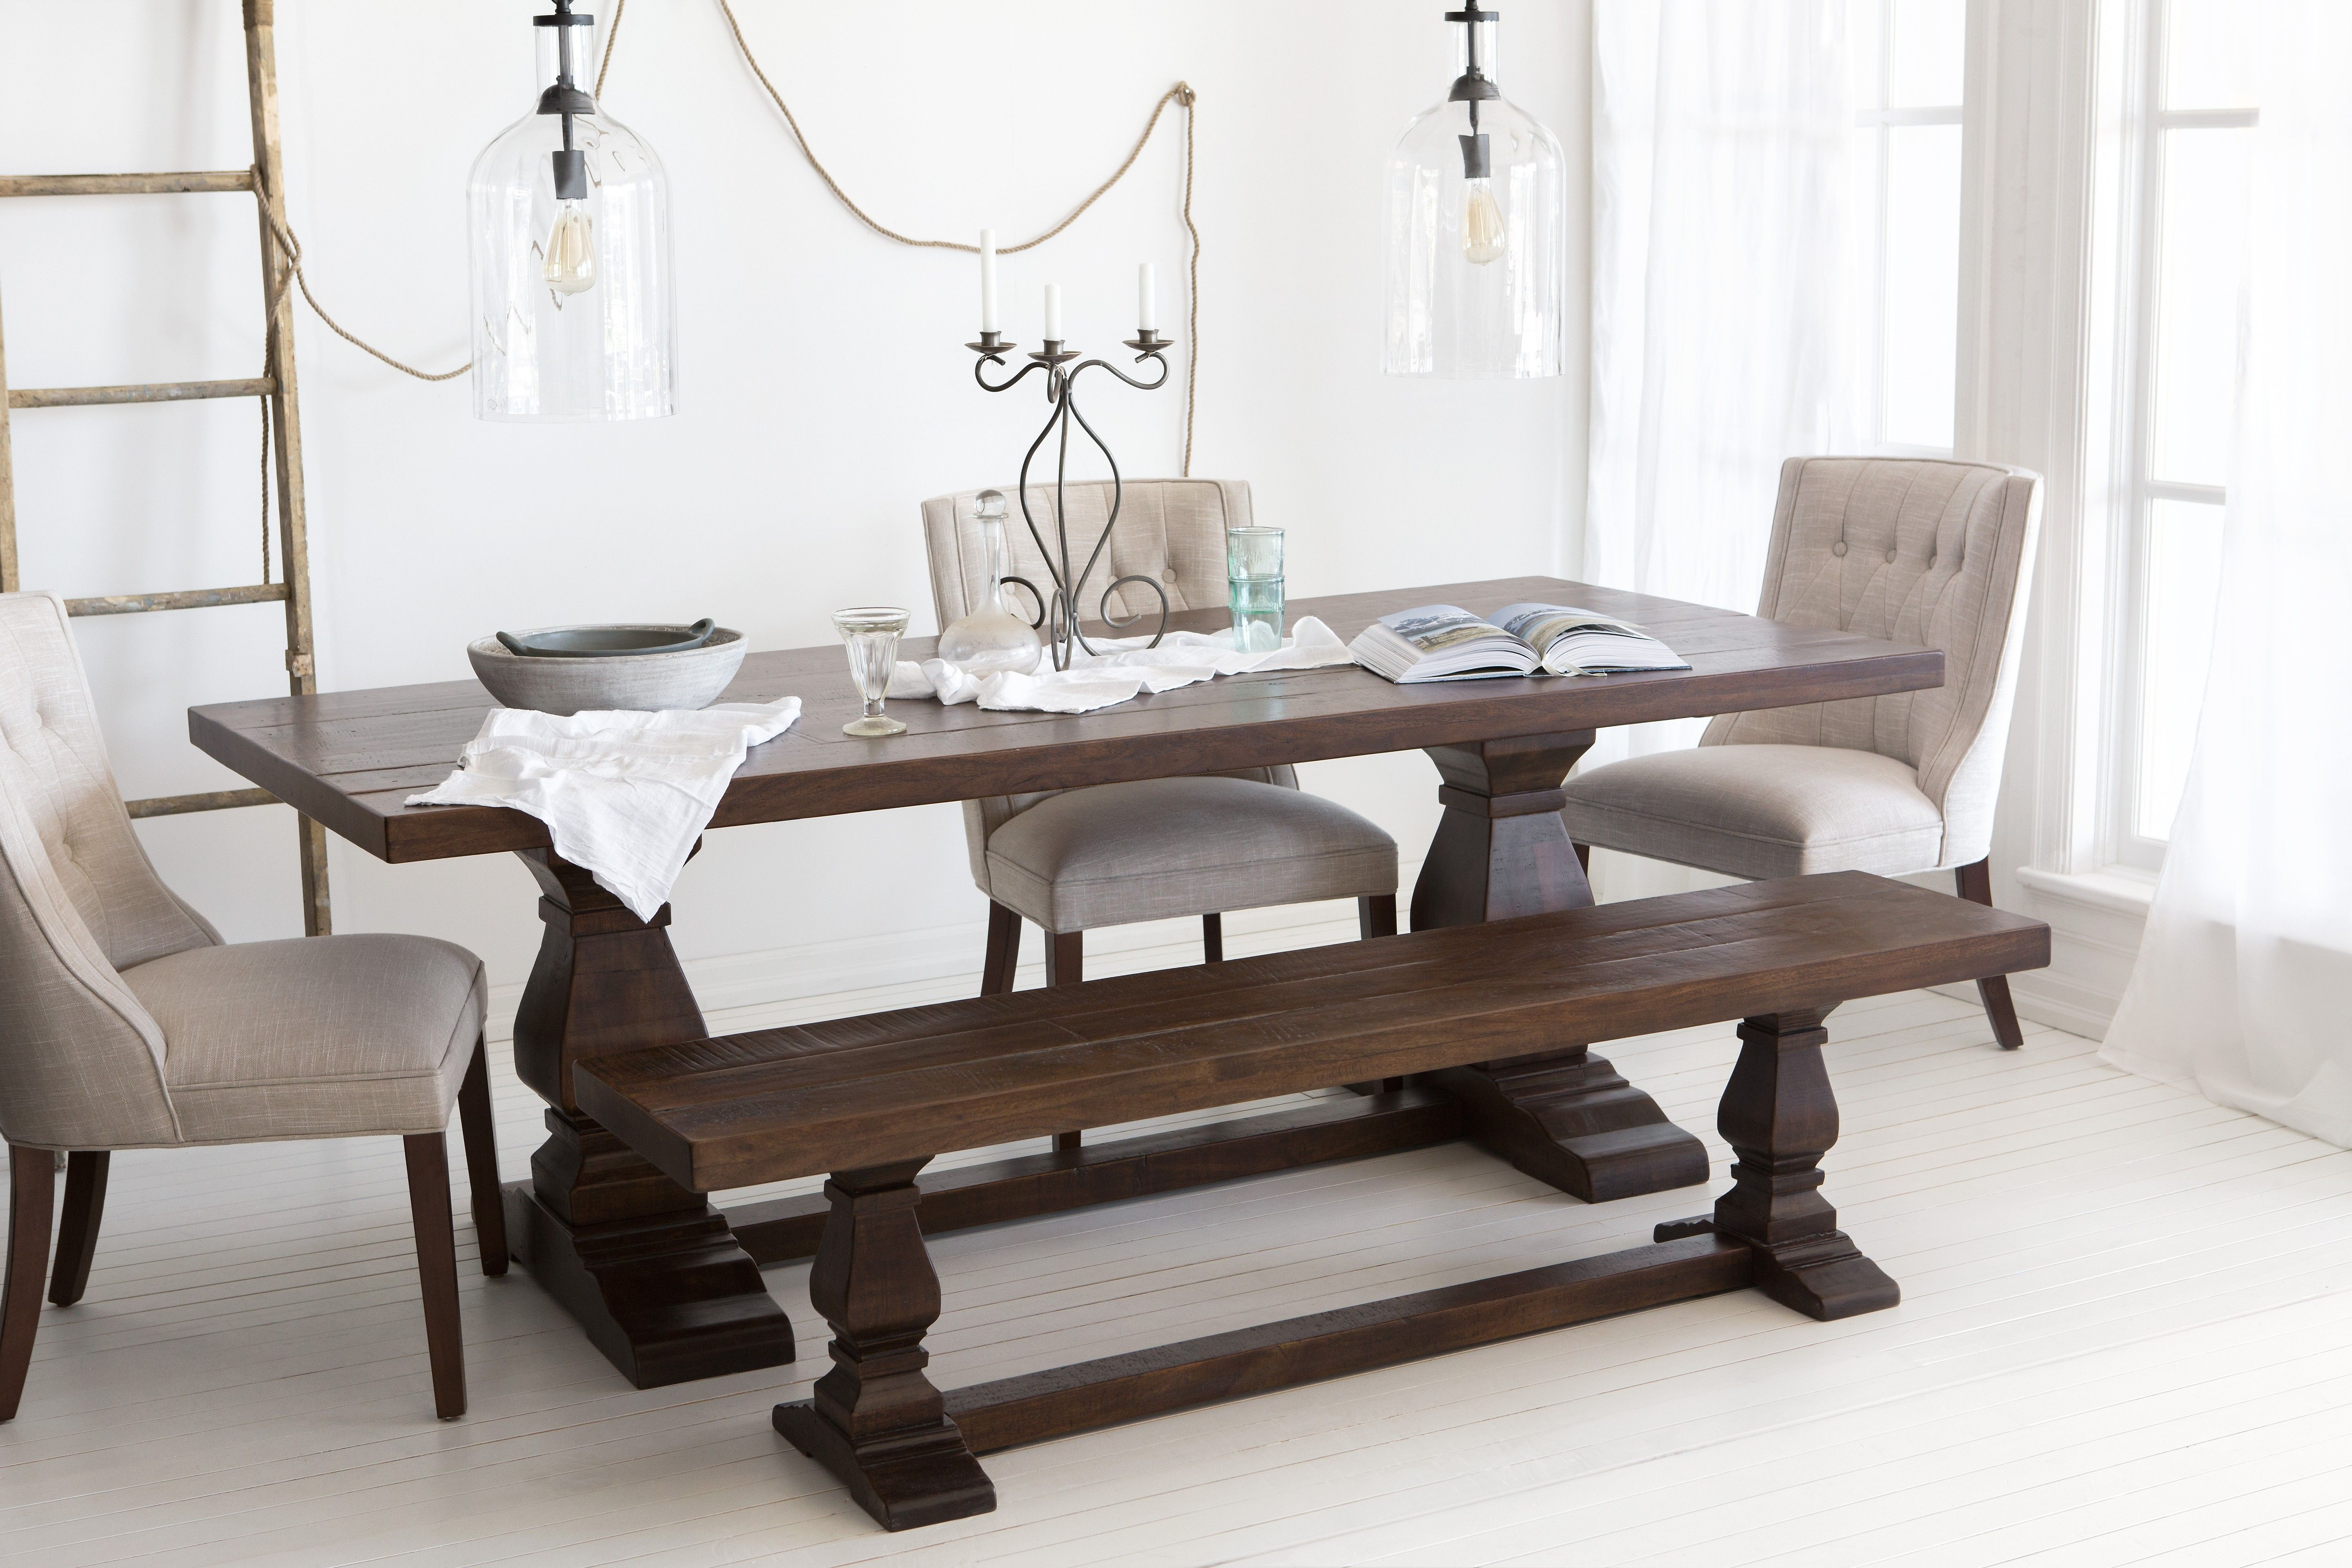 Outstanding Castle Acacia Wood Dining Table 220Cm 87 Dining Table Dailytribune Chair Design For Home Dailytribuneorg